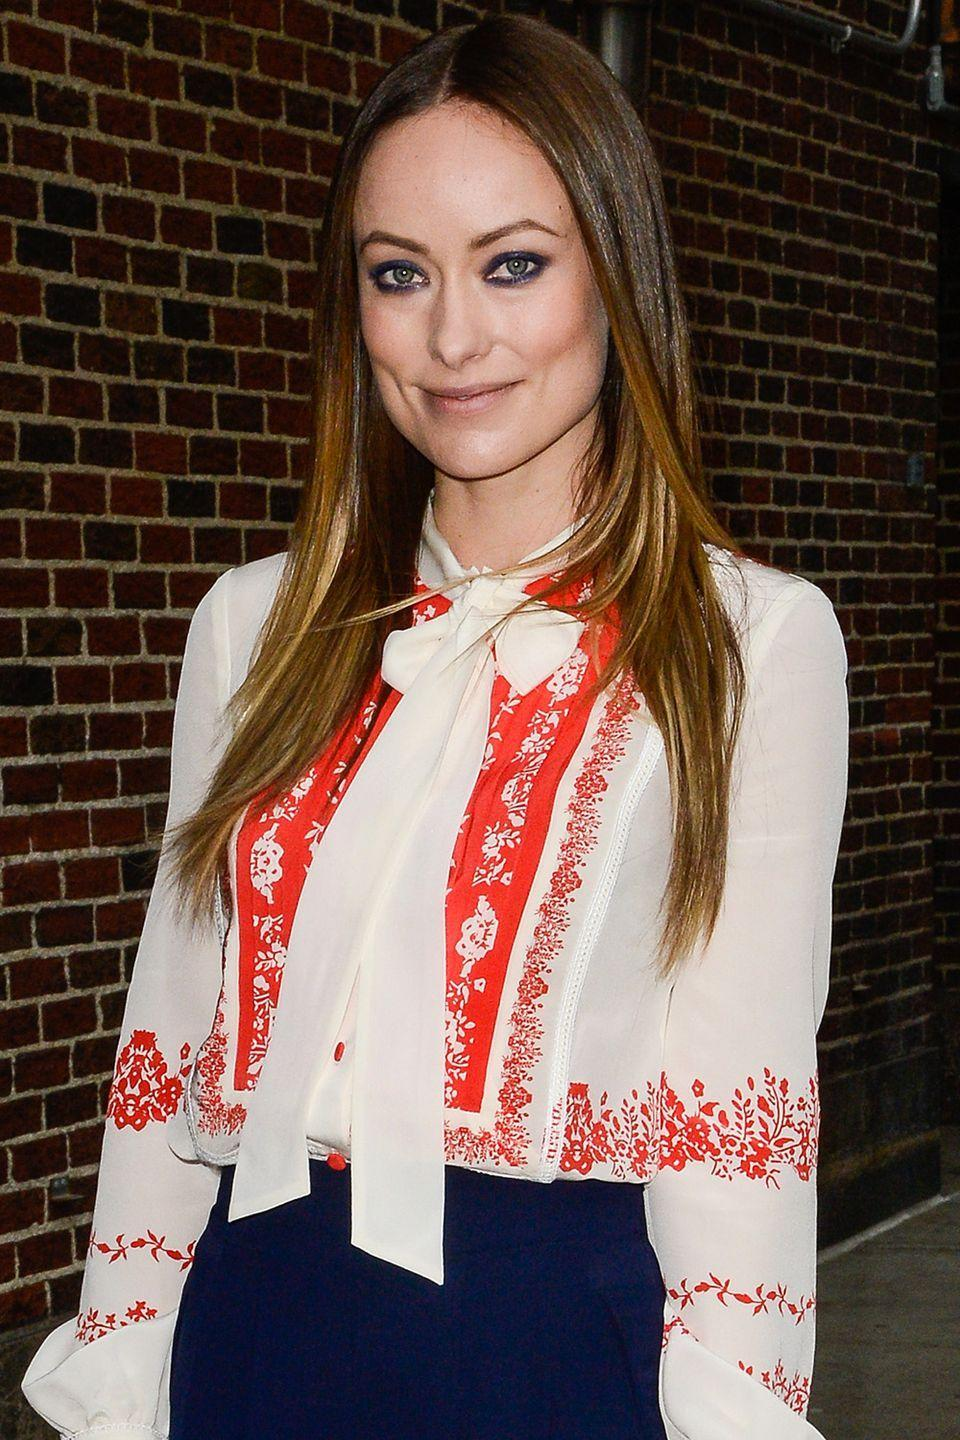 """<p><strong>Born</strong>: Olivia Cockburn</p><p>The actress's stage name is an ode to Oscar Wilde. The actress <a href=""""http://people.com/celebrity/5-things-you-didnt-know-about-olivia-wilde/"""" rel=""""nofollow noopener"""" target=""""_blank"""" data-ylk=""""slk:changed her last name"""" class=""""link rapid-noclick-resp"""">changed her last name</a> after playing Gwendolen in her high school's rendition of Oscar Wilde's <em>The Importance of Being Earnest.</em></p>"""